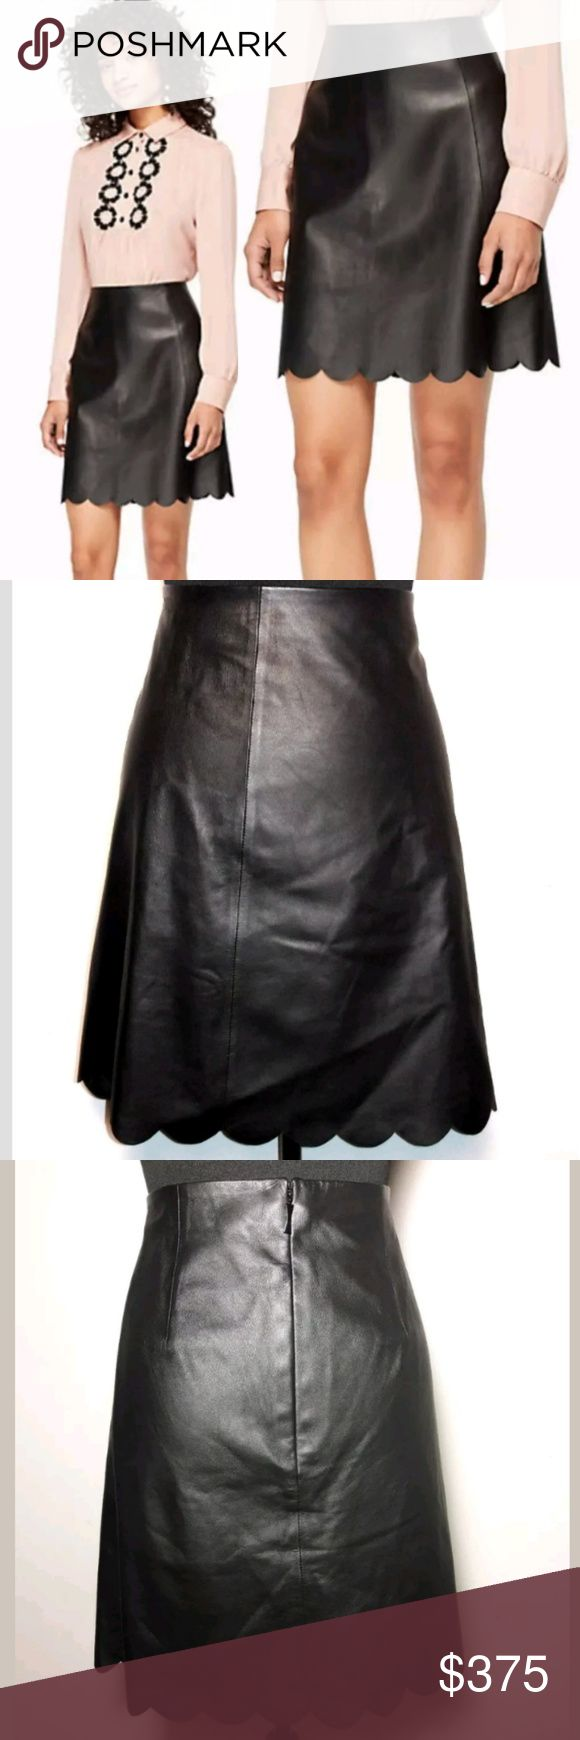 """Kate Spade Black Leather Scallop Skirt NWT Kate Spade Mini Skirt Womens 6 Black 100% Lamb Leather Scallop Edge Hem NEW  This is a brand new that has never been worn.  There is a minor unnoticeable flaw in the front inseam. Please view image.  Skirt the Rules. """"She is quick and curious and playful and strong""""  Retail Price $548  Thank you for Looking & Sharing Happy Poshing😄💗 kate spade Skirts Mini"""